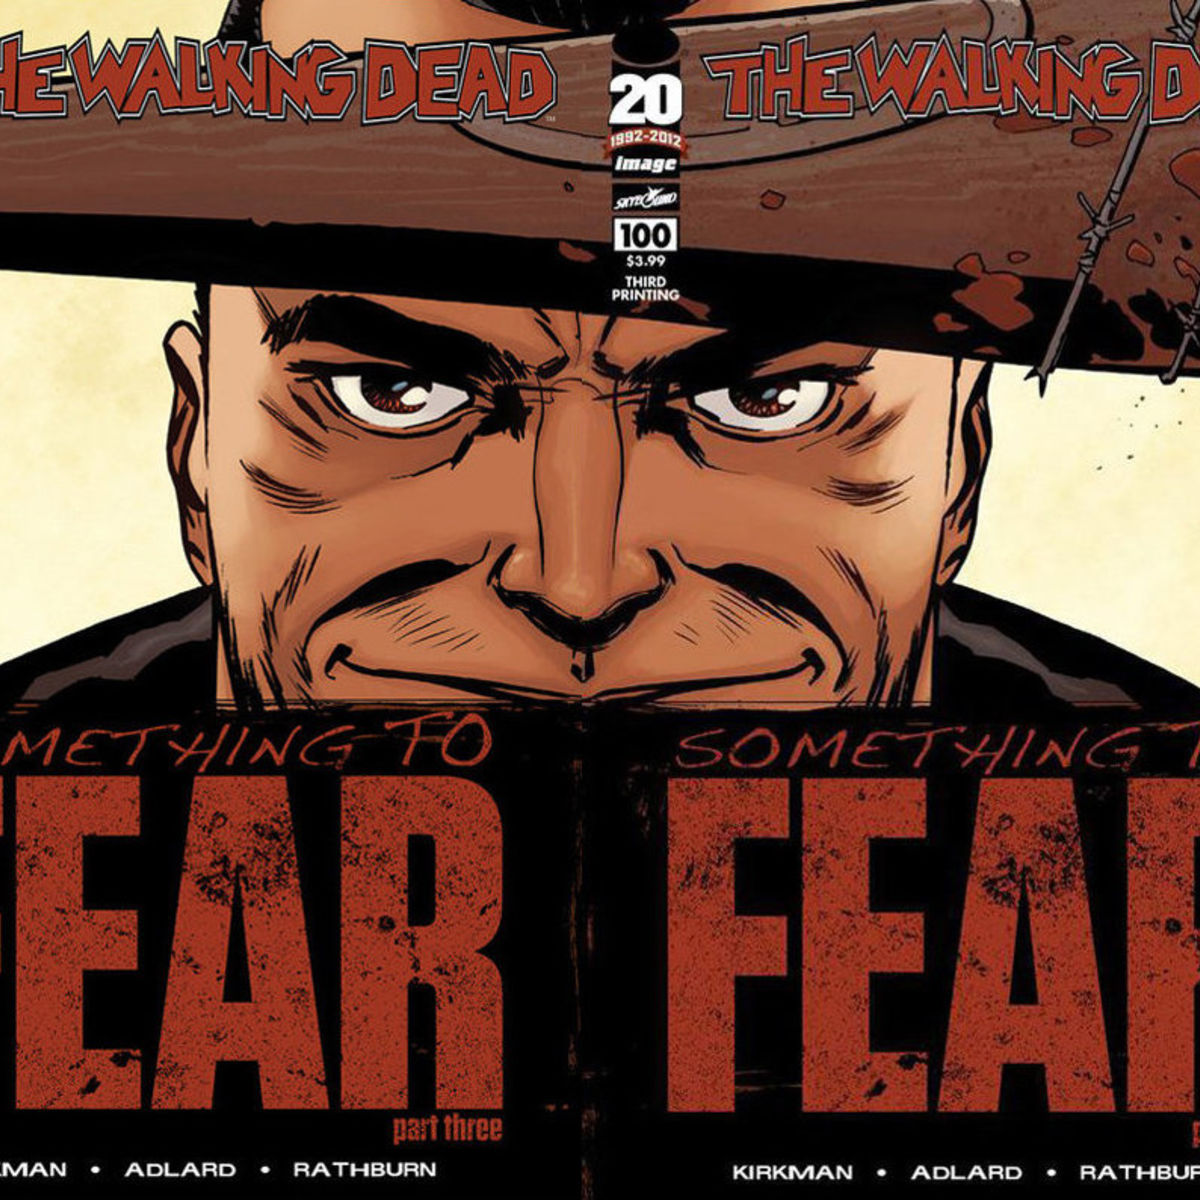 2845543-the_walking_dead_v1_097_102_joi2nd.jpg